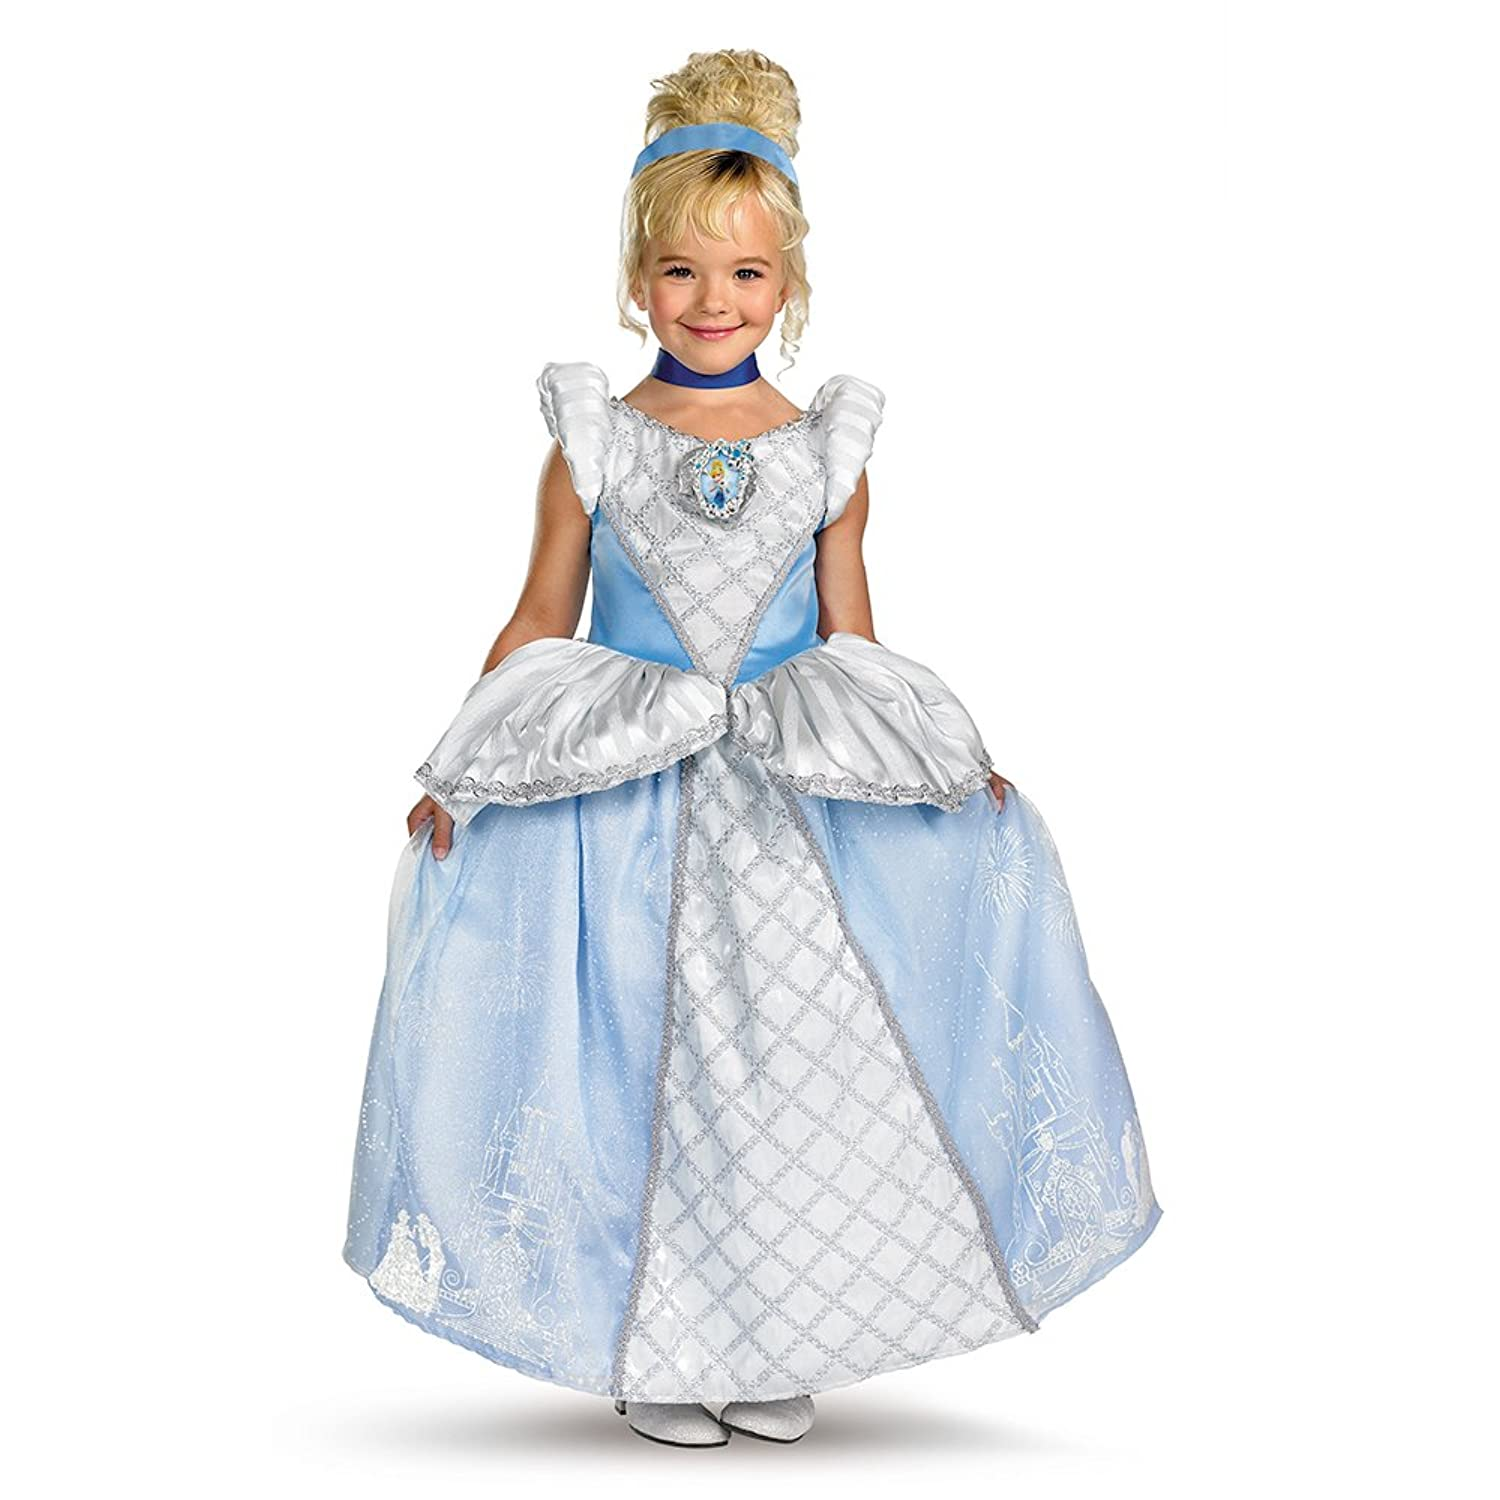 Amazon.com: Storybook Cinderella Prestige: Clothing